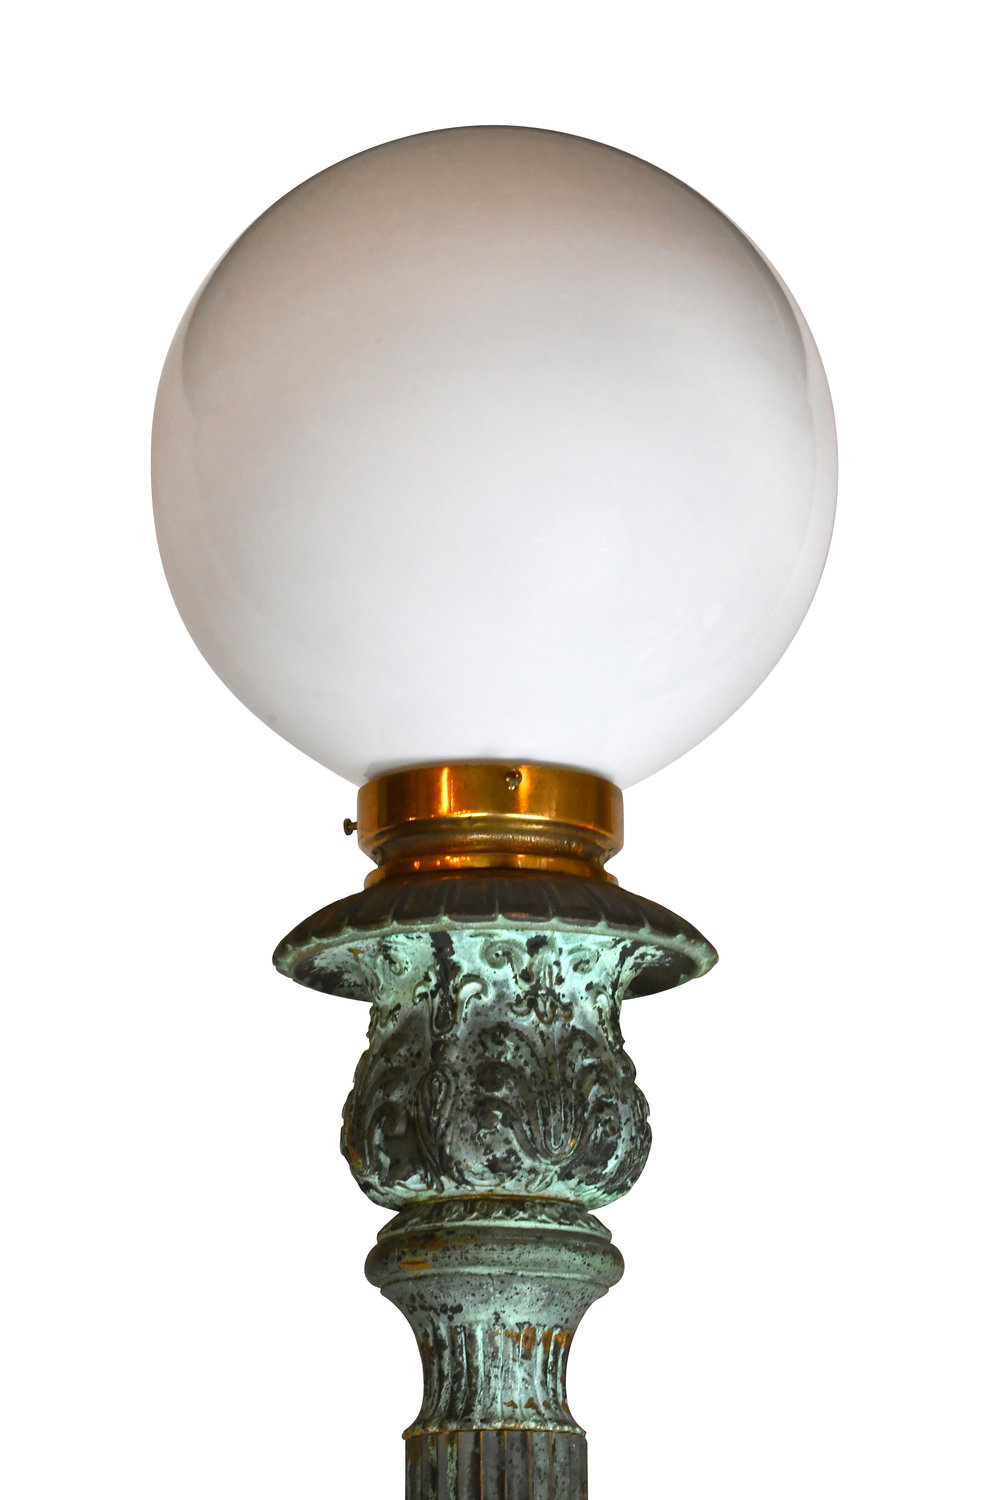 47586-bronze-street-light-bulb-1-edit.jpg